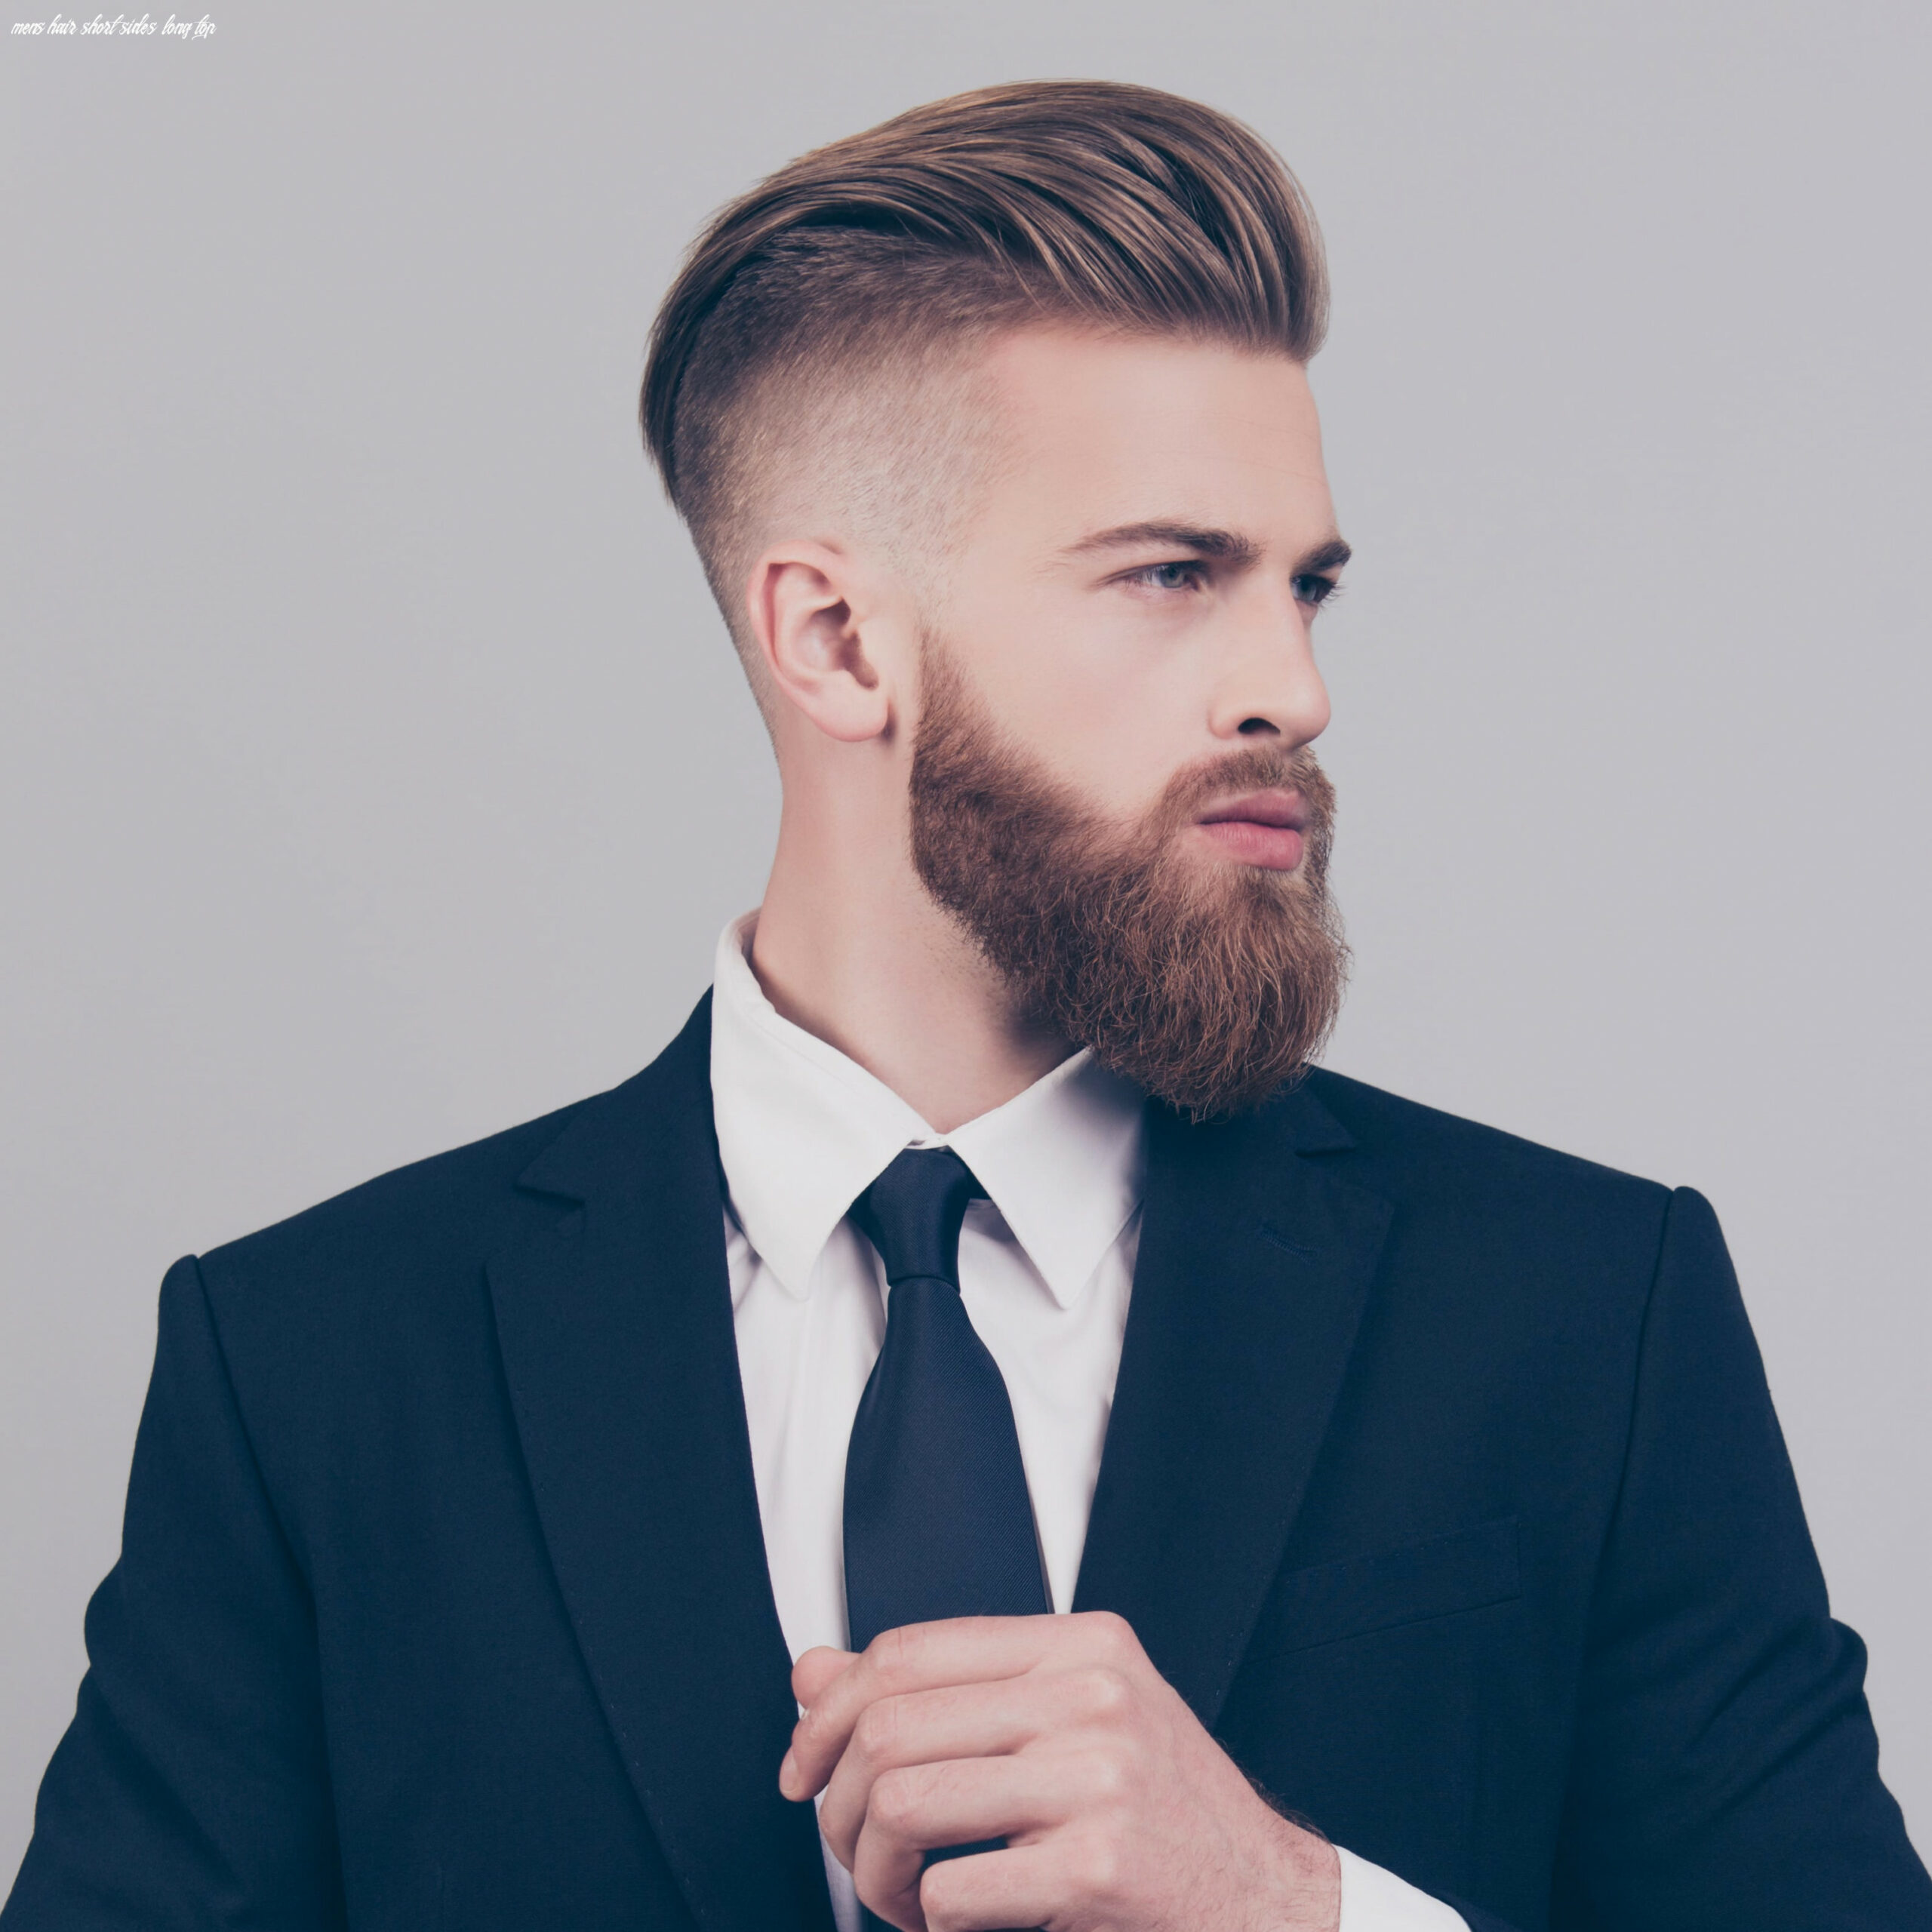 The best of both worlds: short sides & long top | haircut inspiration mens hair short sides long top